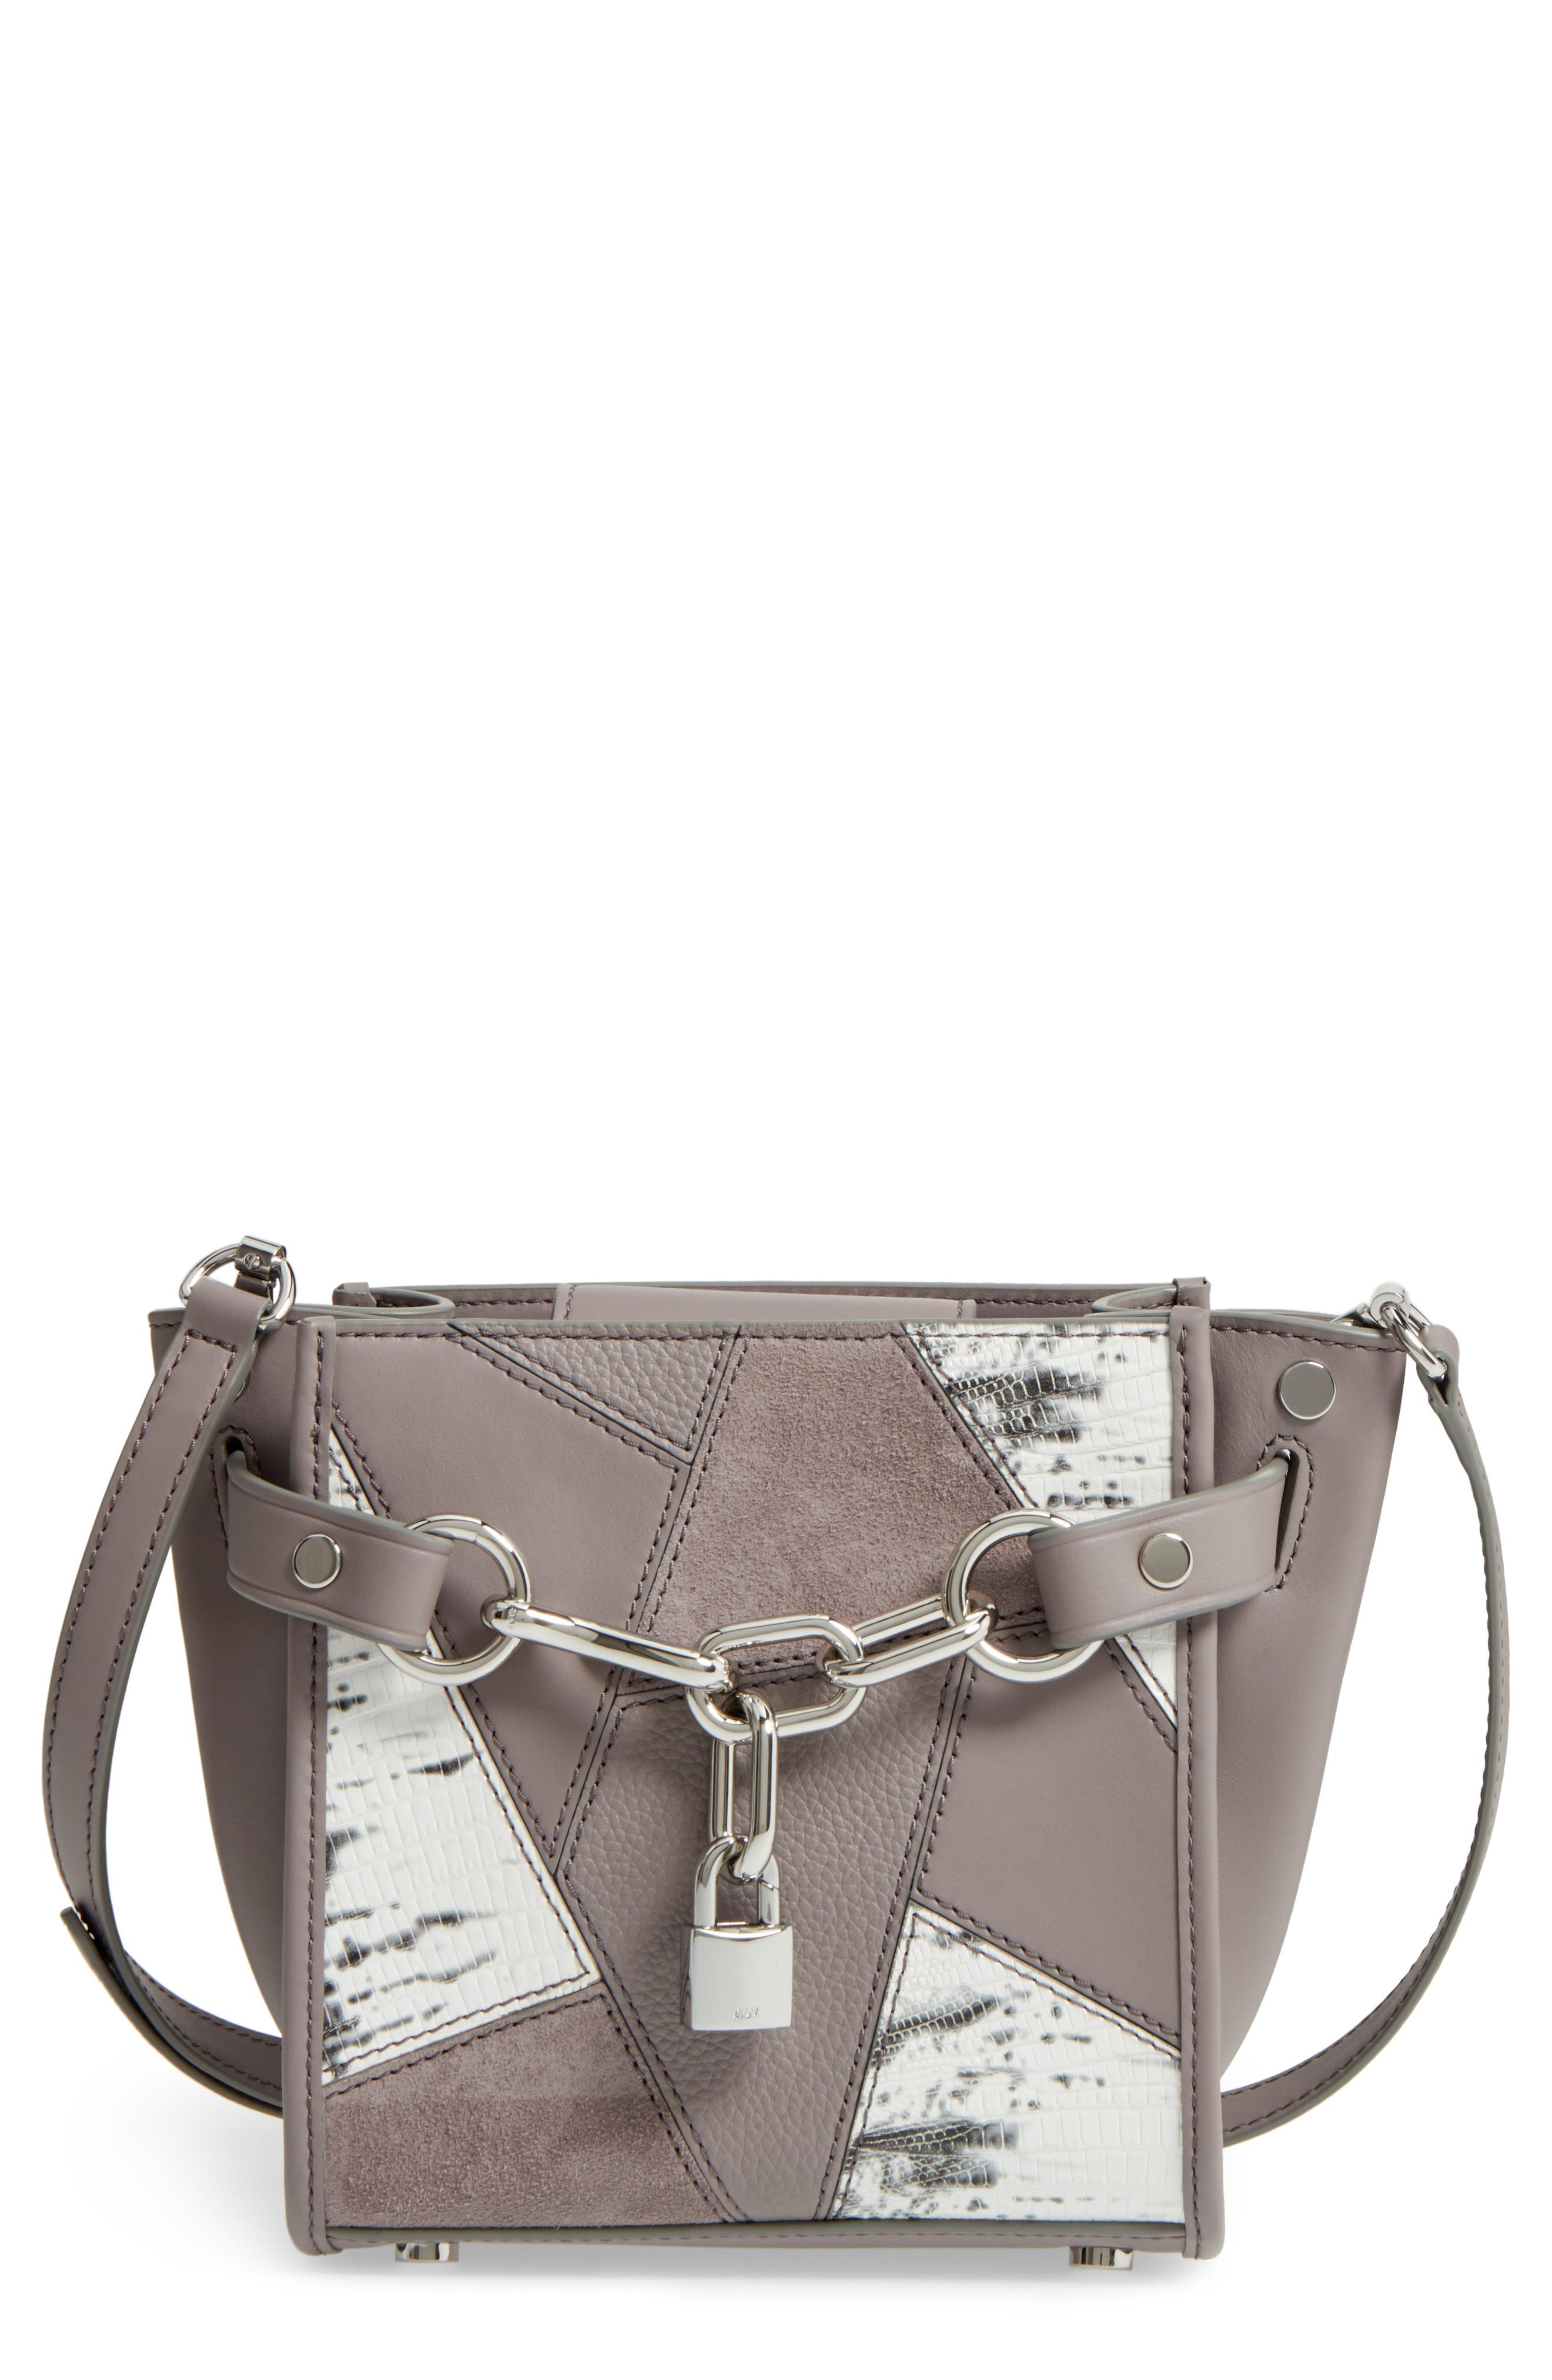 Alexander Wang Mini Attica Patchwork Leather Satchel